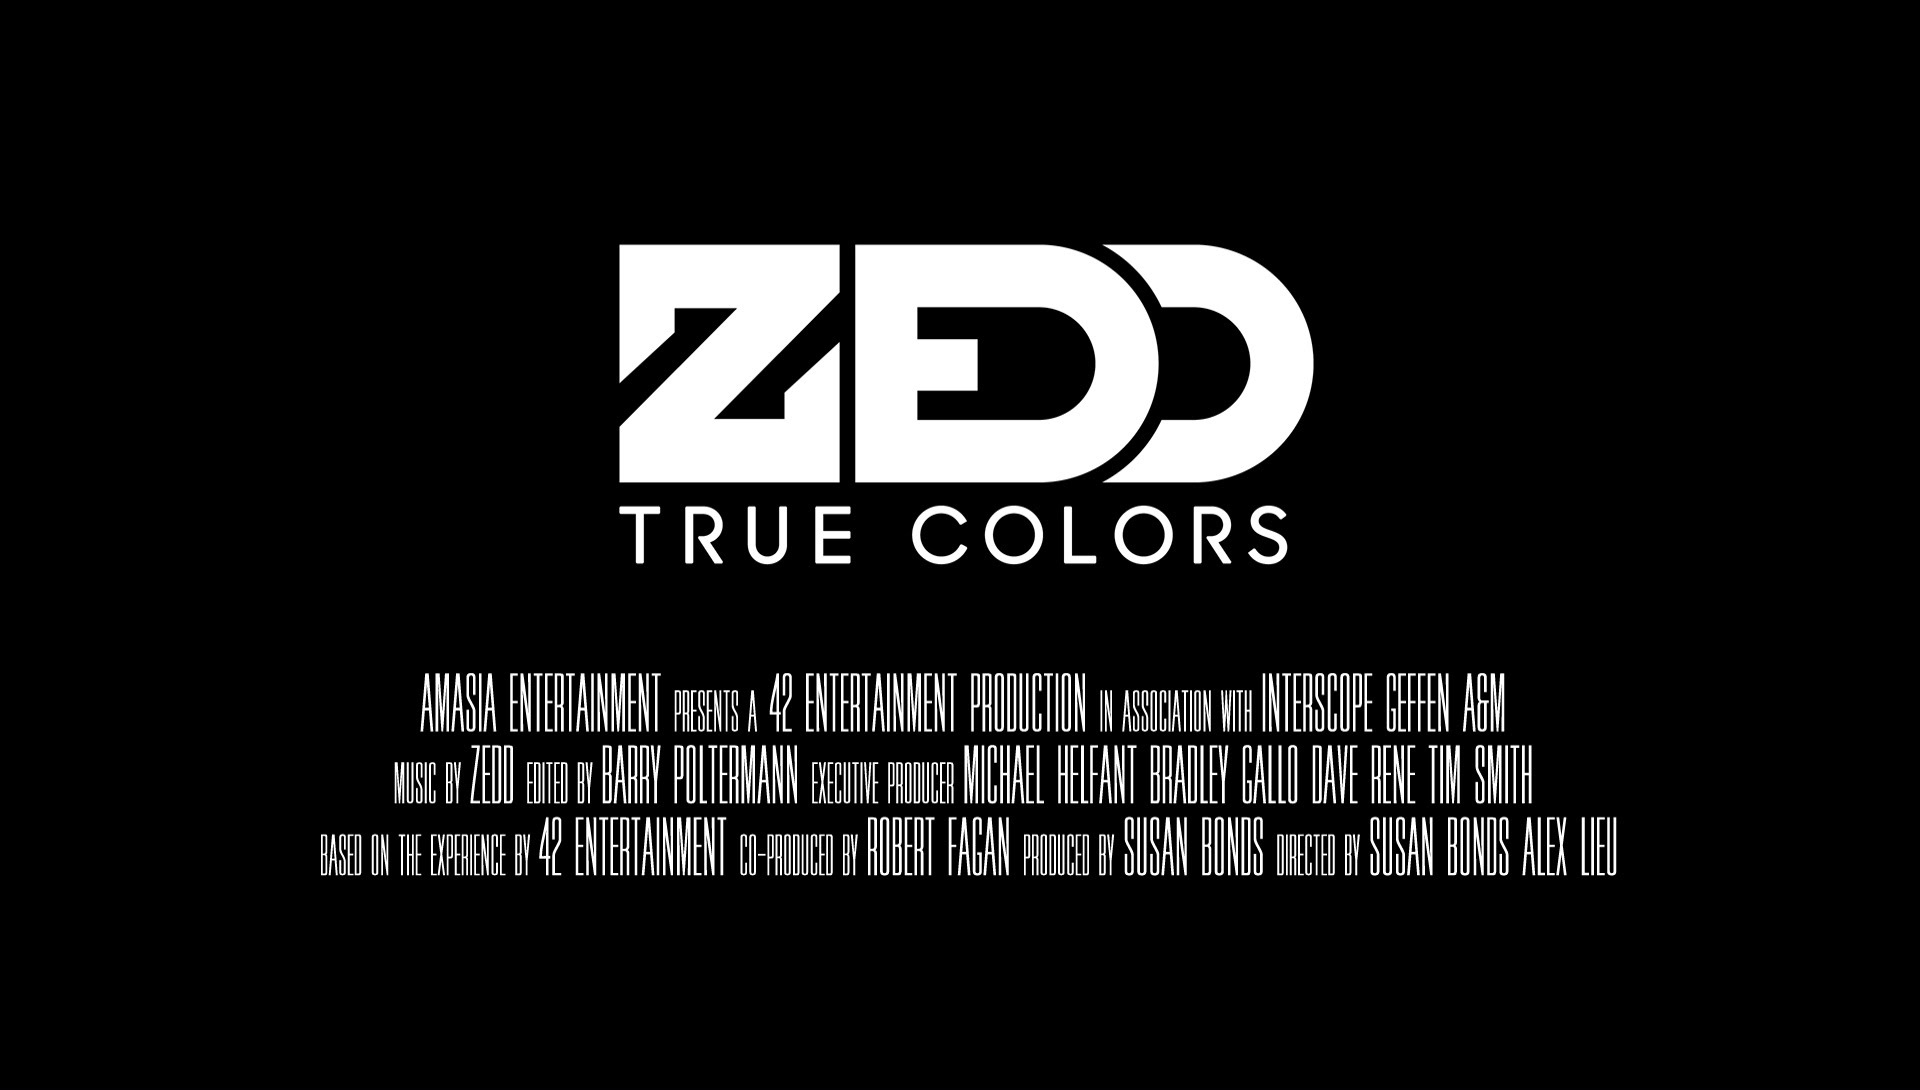 ZEDD - DOCUMENTAL TRUECOLORS